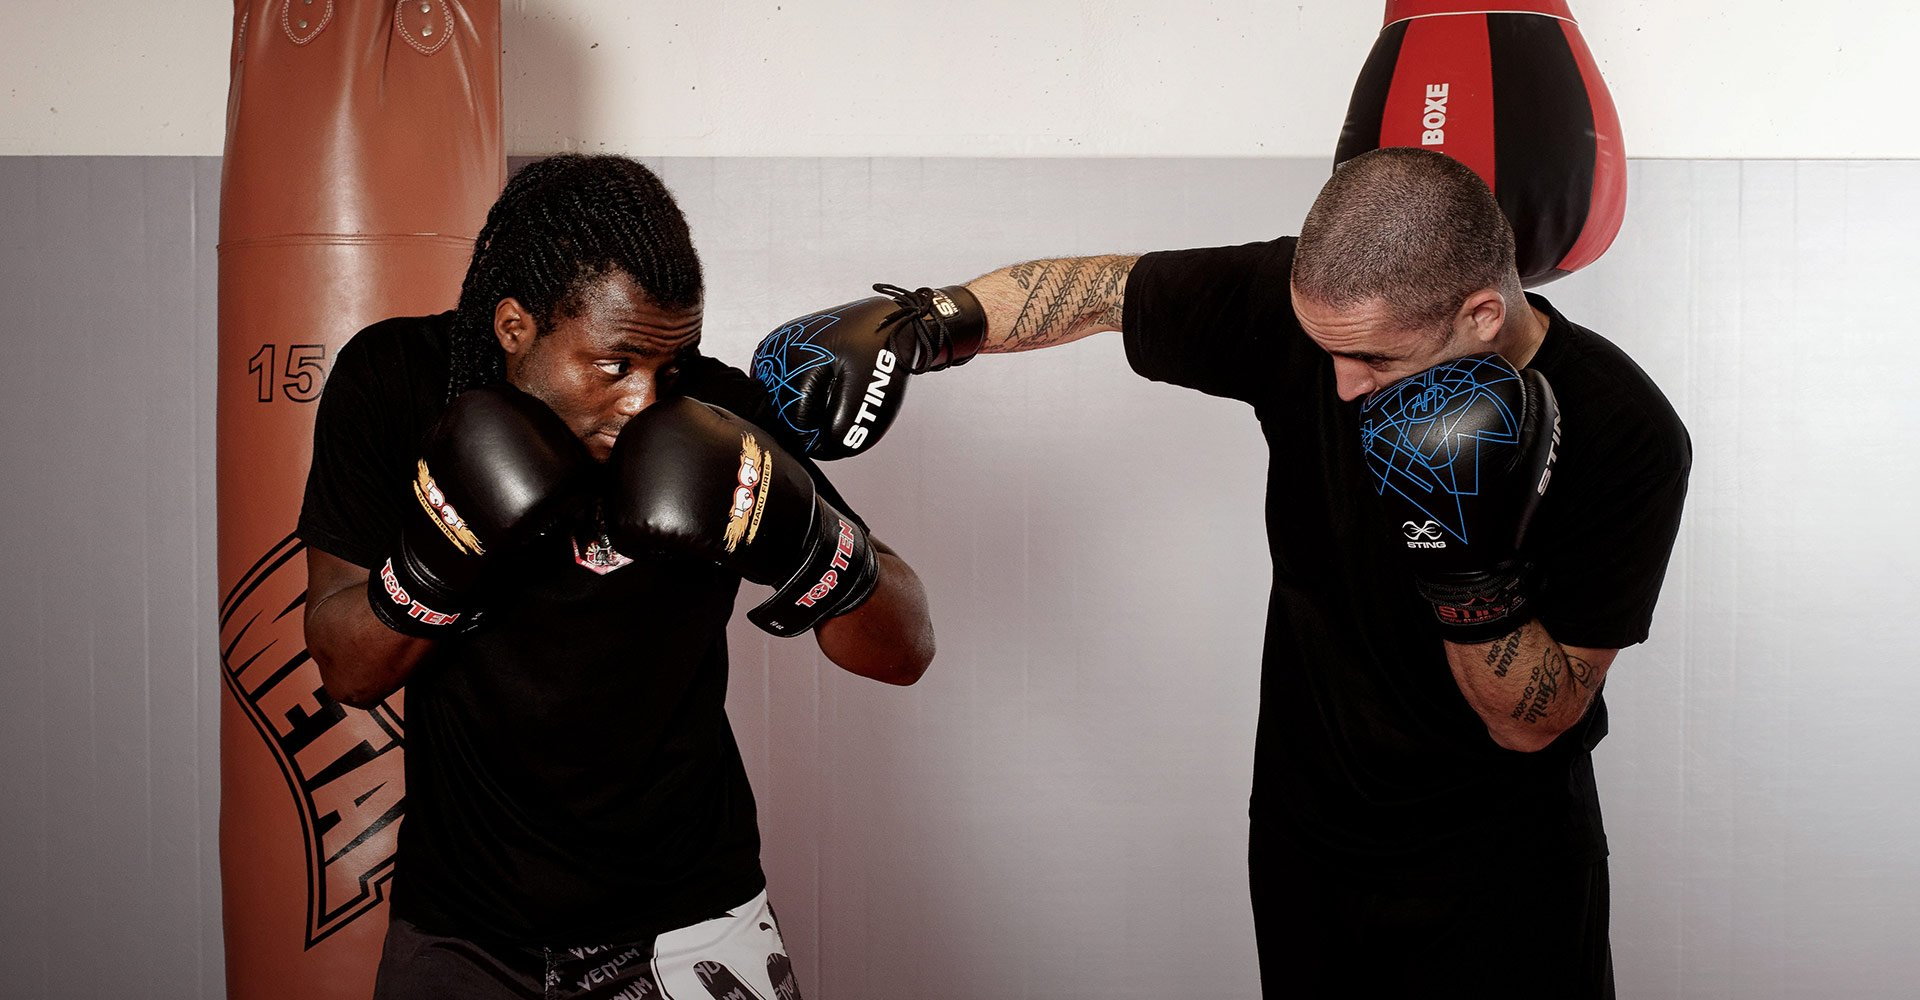 cours_boxe_anglaise